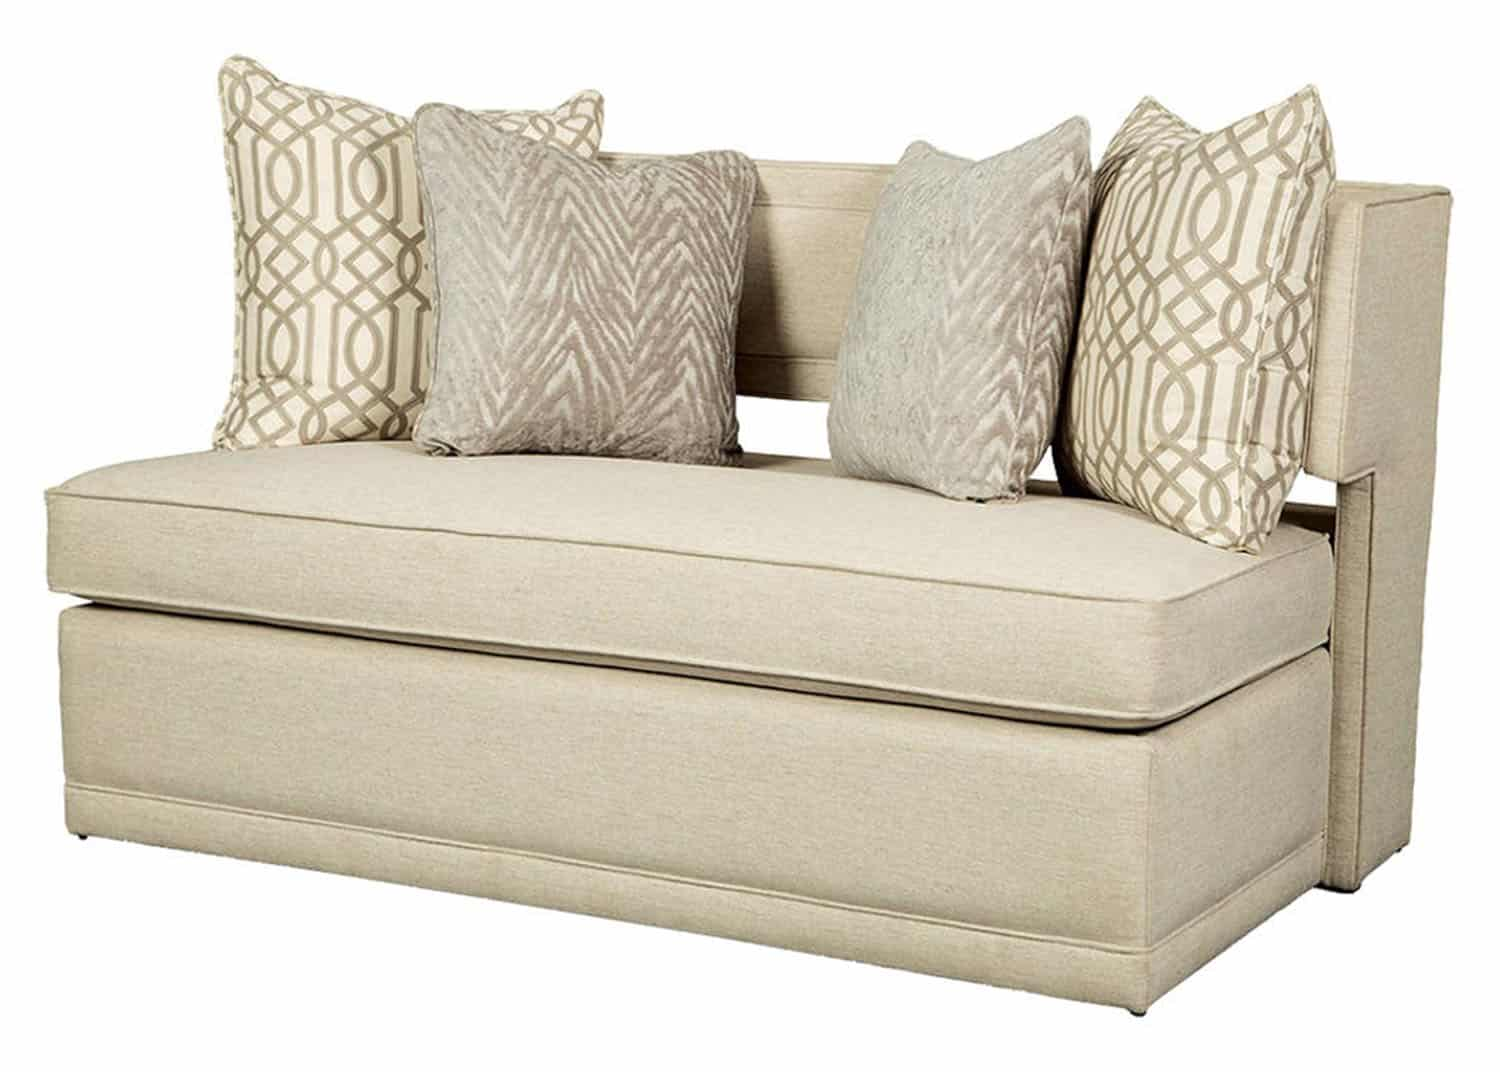 Meubles sofa bed for Meuble sofa montreal